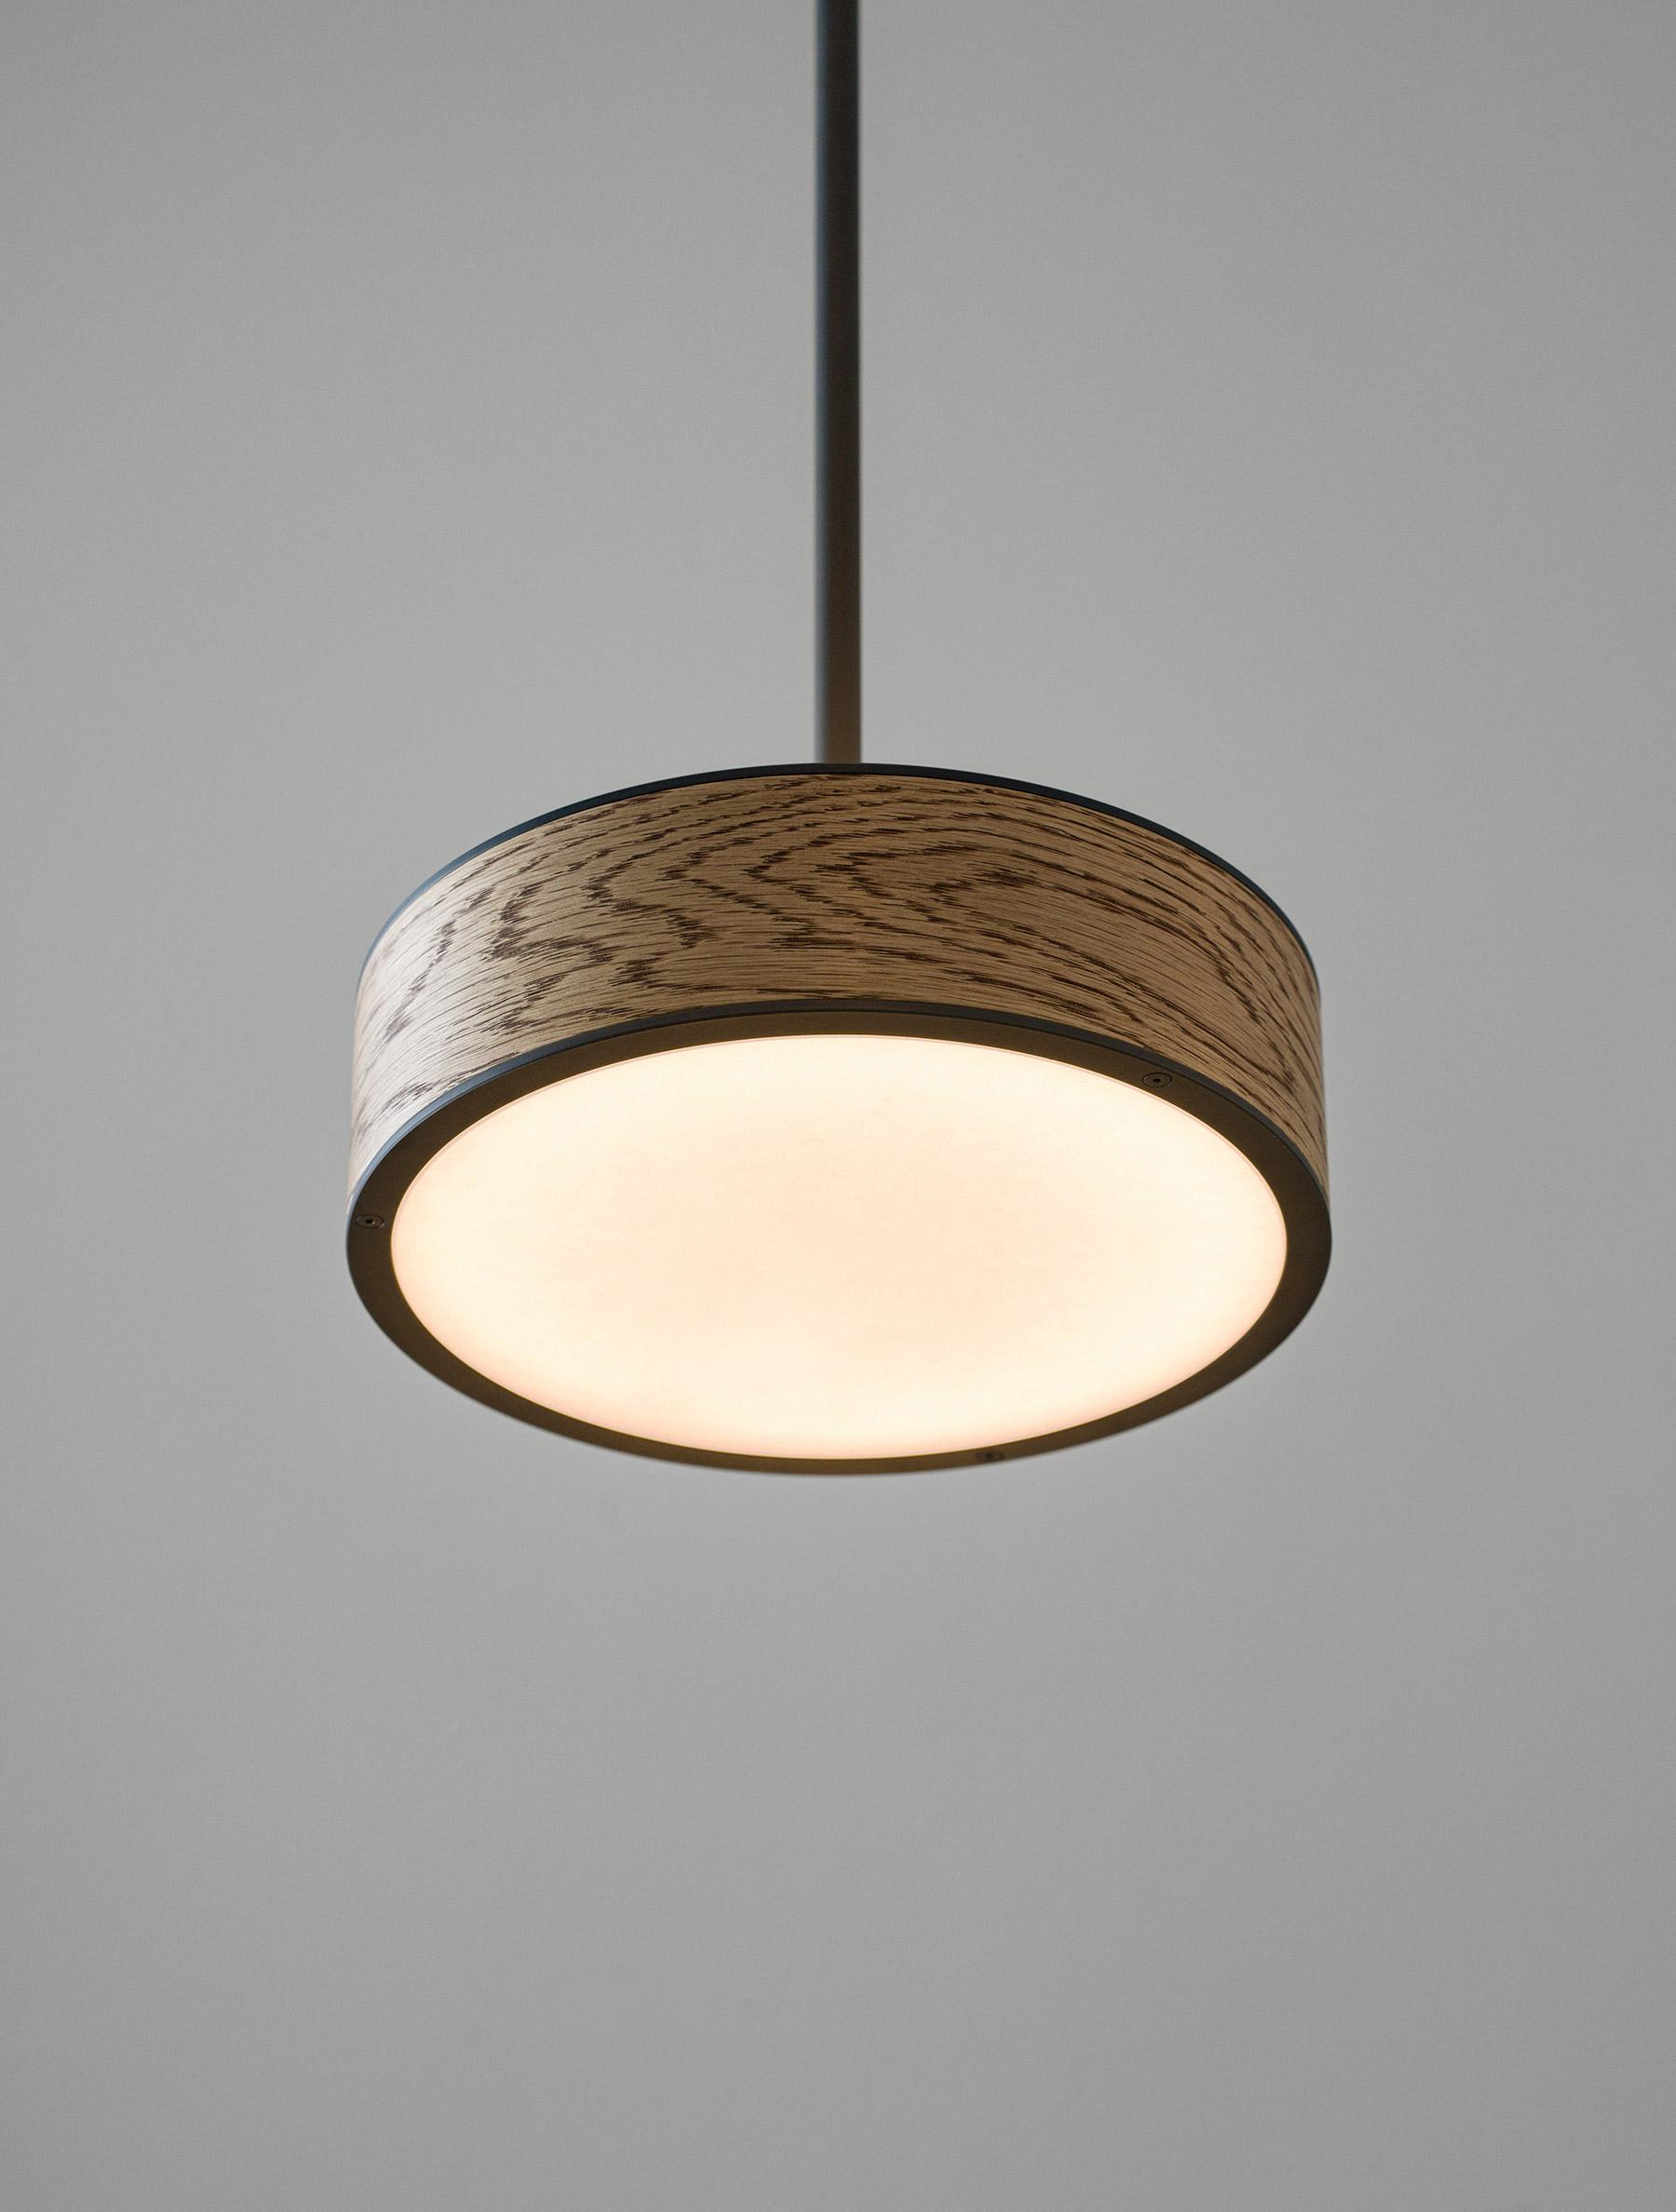 "Monoscope Pendant 10"" shown in Maker Black, American Ash"